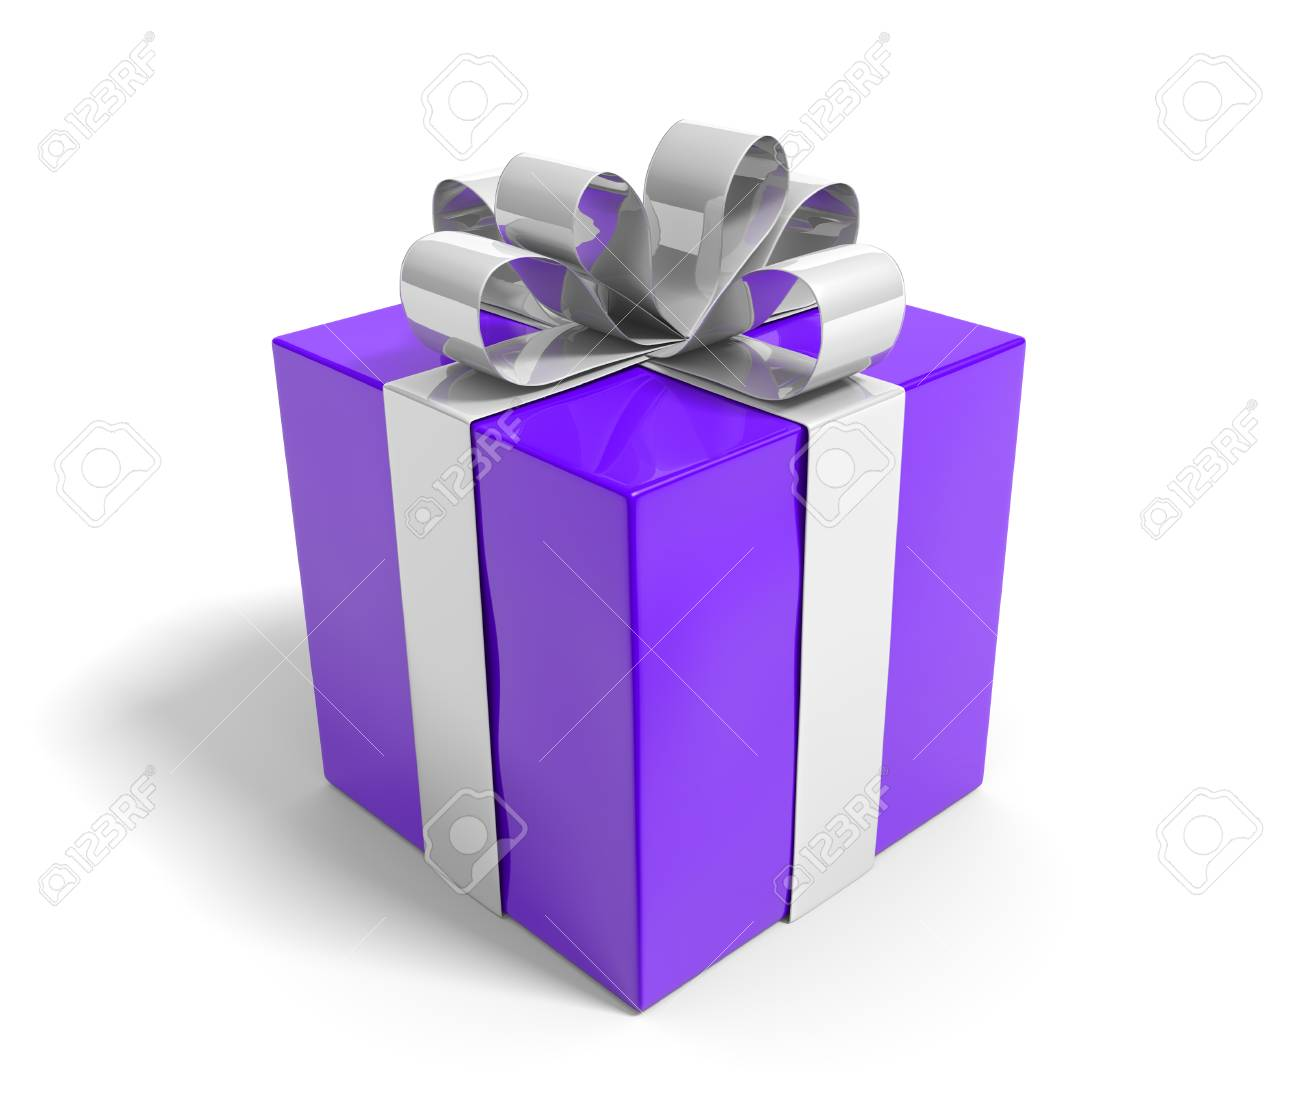 Pretty purple gift box tied with shiny silver ribbons Stock Photo - 34173060  sc 1 st  123RF.com : purple gift boxes - princetonregatta.org